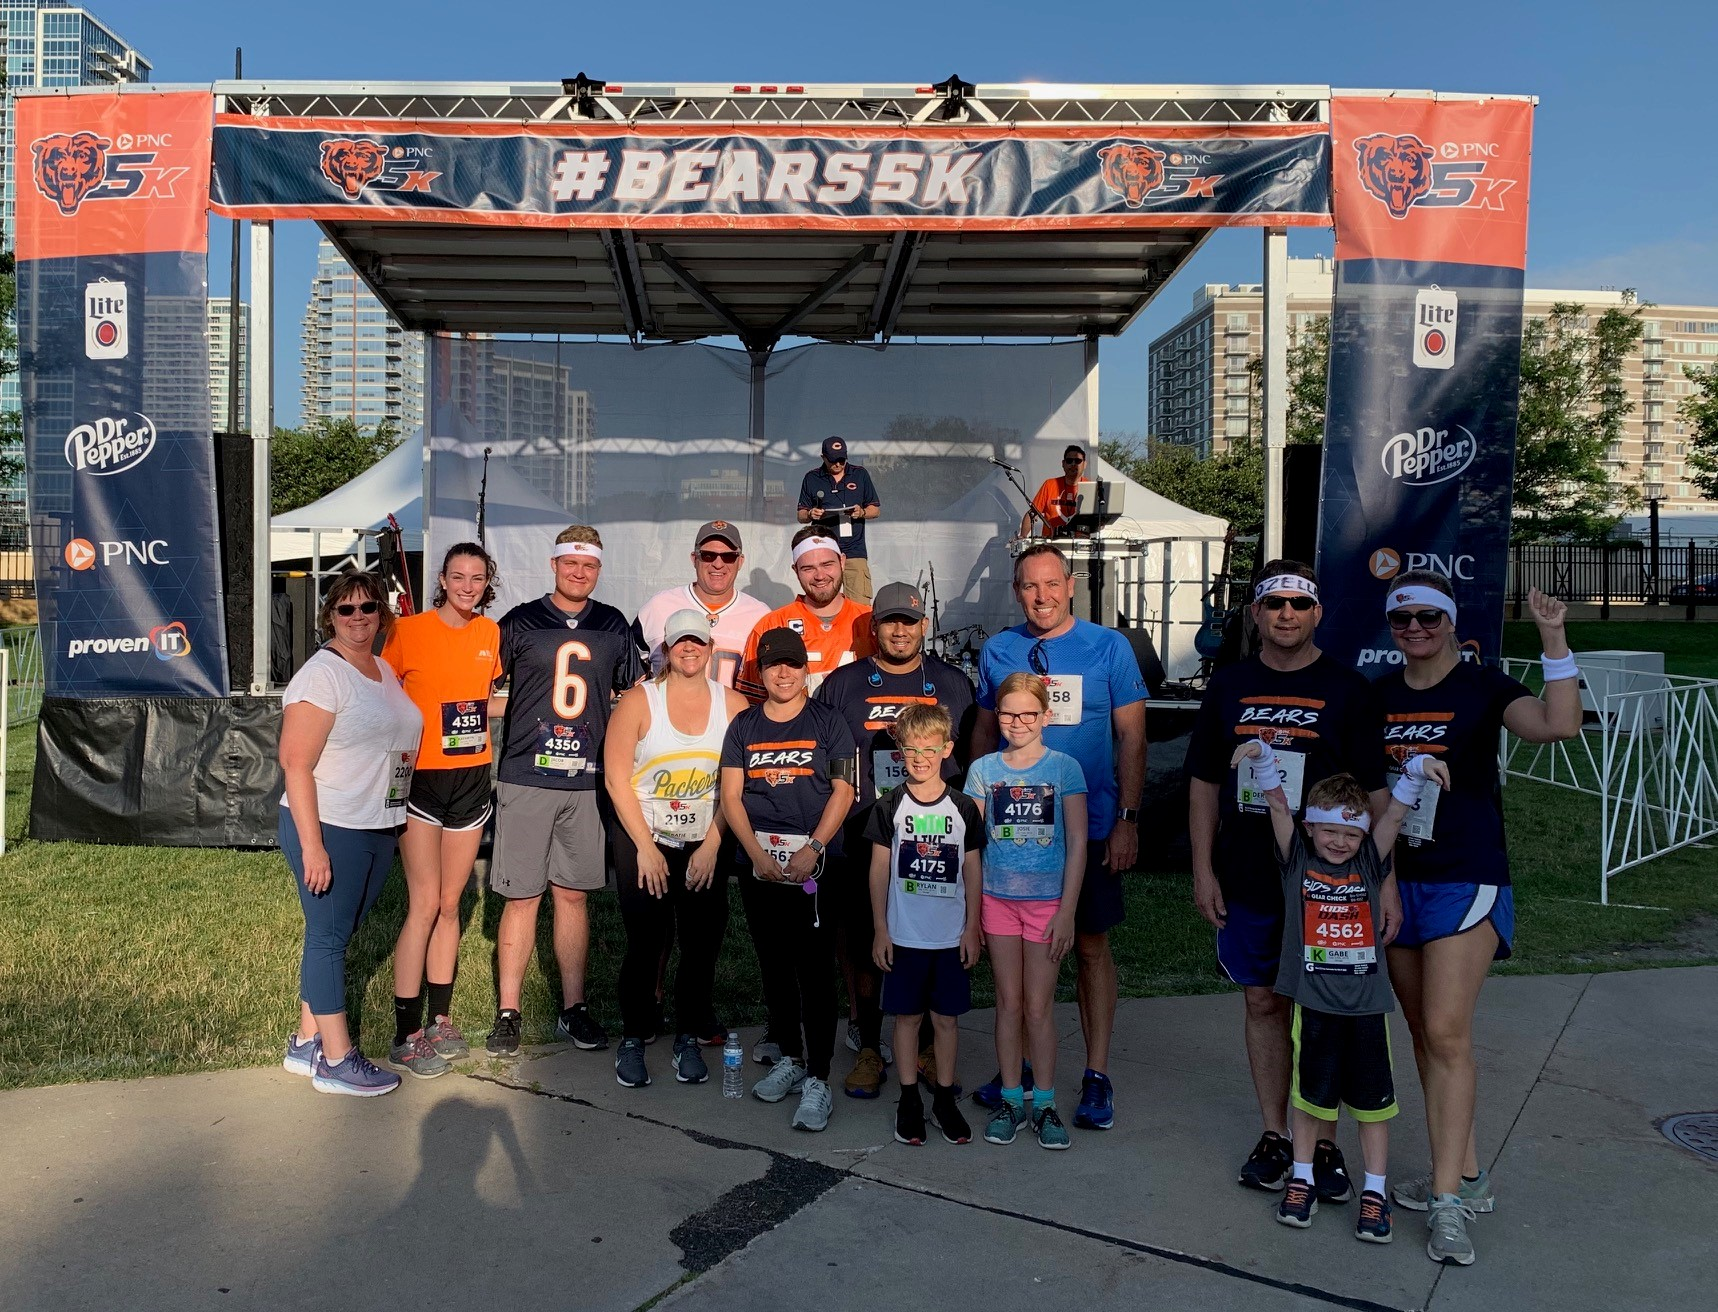 2019 PNC Chicago Bears 5k Run/Walk